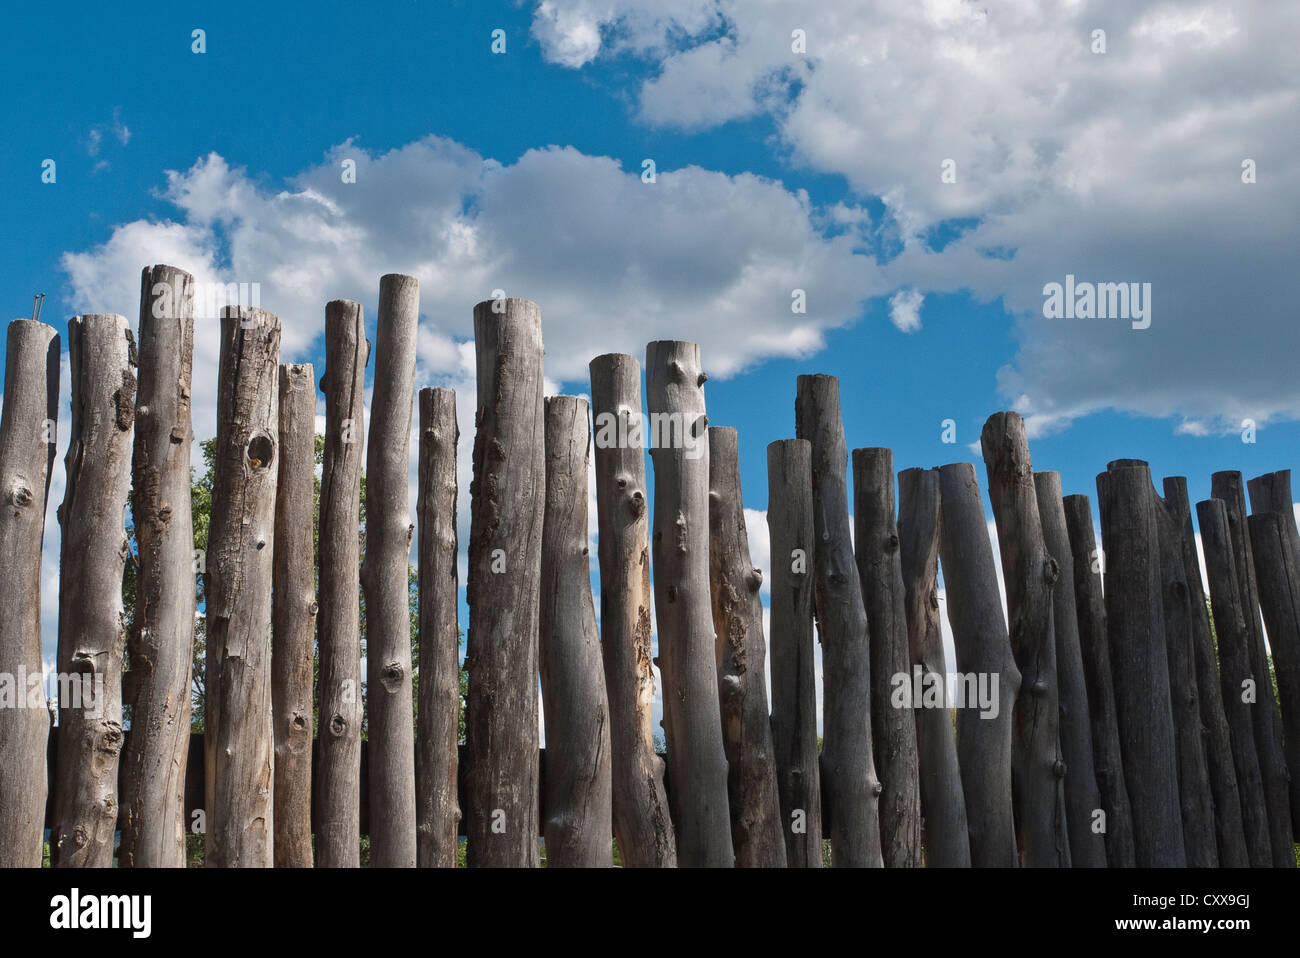 Traditional primitive wood fence made of tree branches, Santa Fe, New Mexico, USA. - Stock Image